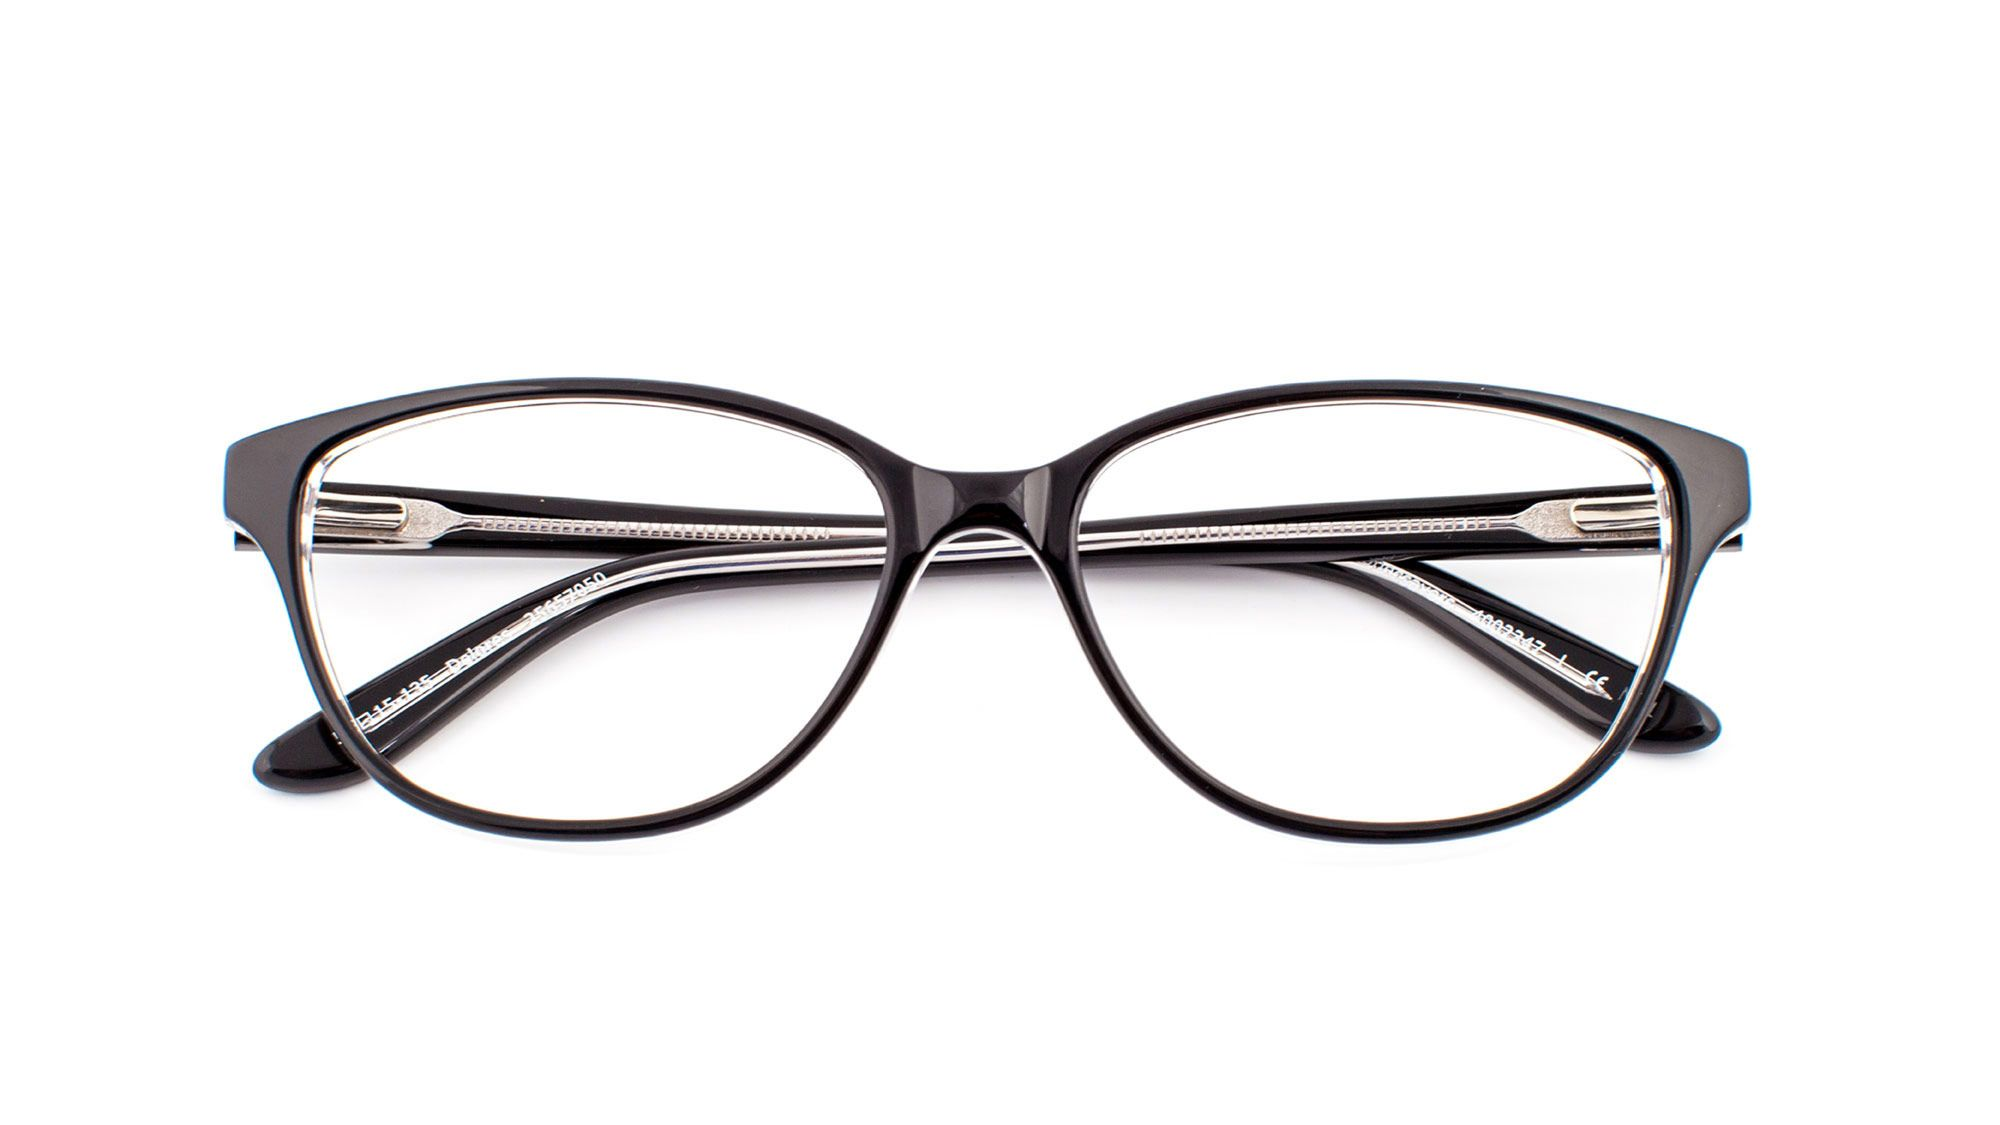 90951711679 DELORES Glasses by Specsavers